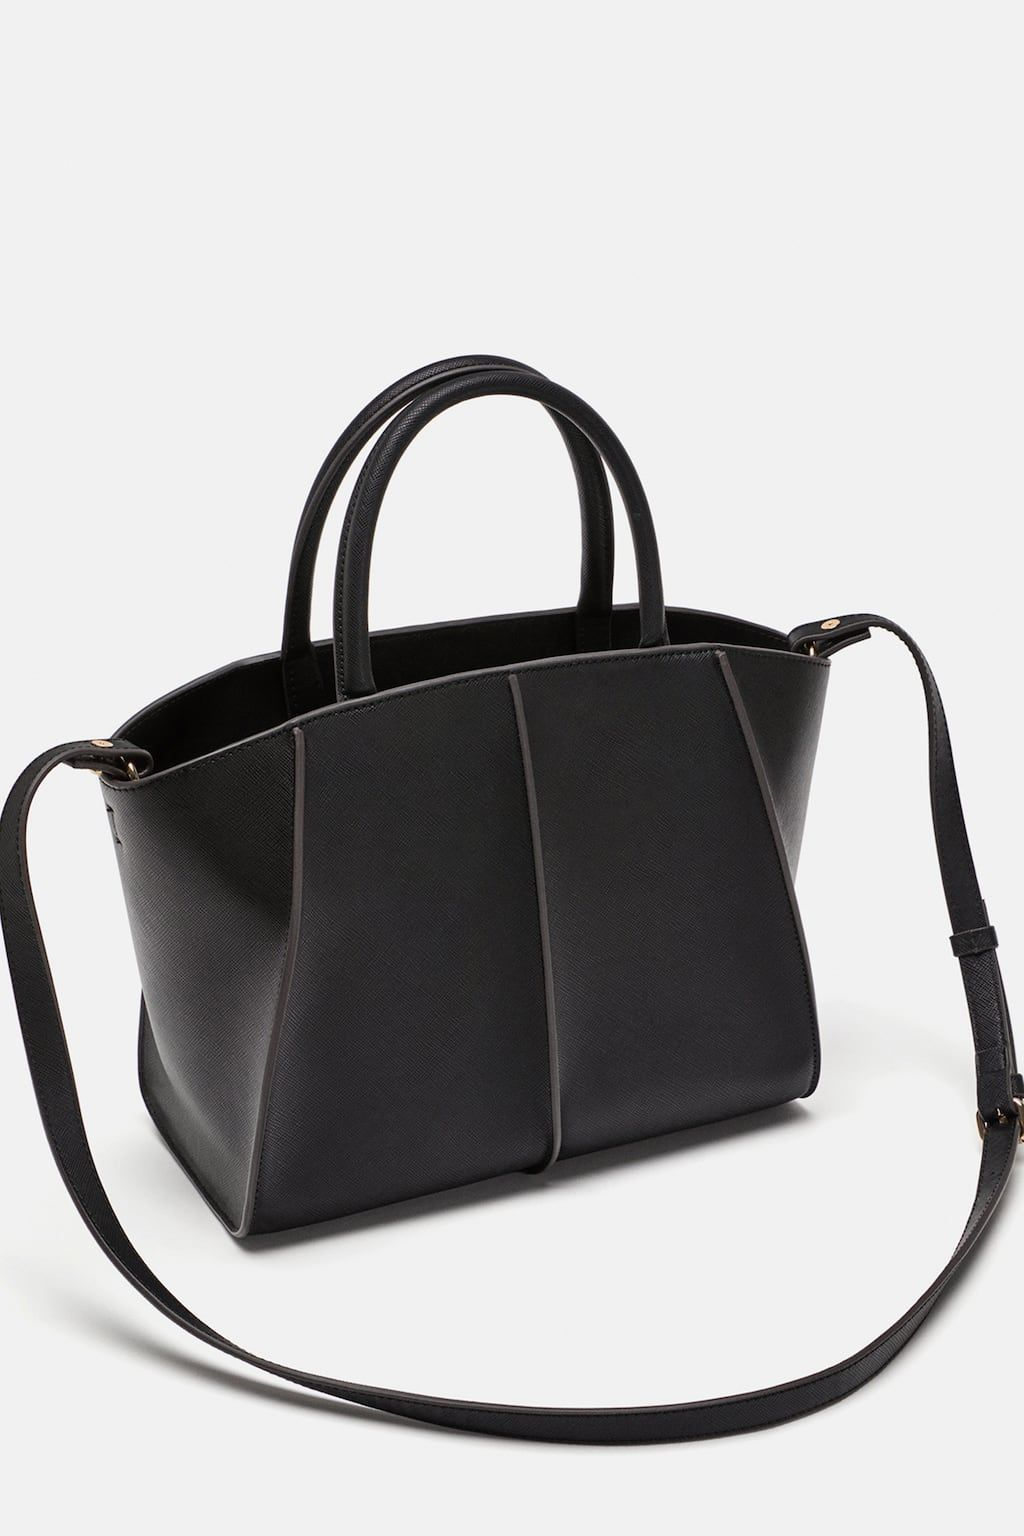 e324cb8a31e7 Image 3 of MEDIUM TOTE BAG WITH CONTRASTING DETAIL from Zara